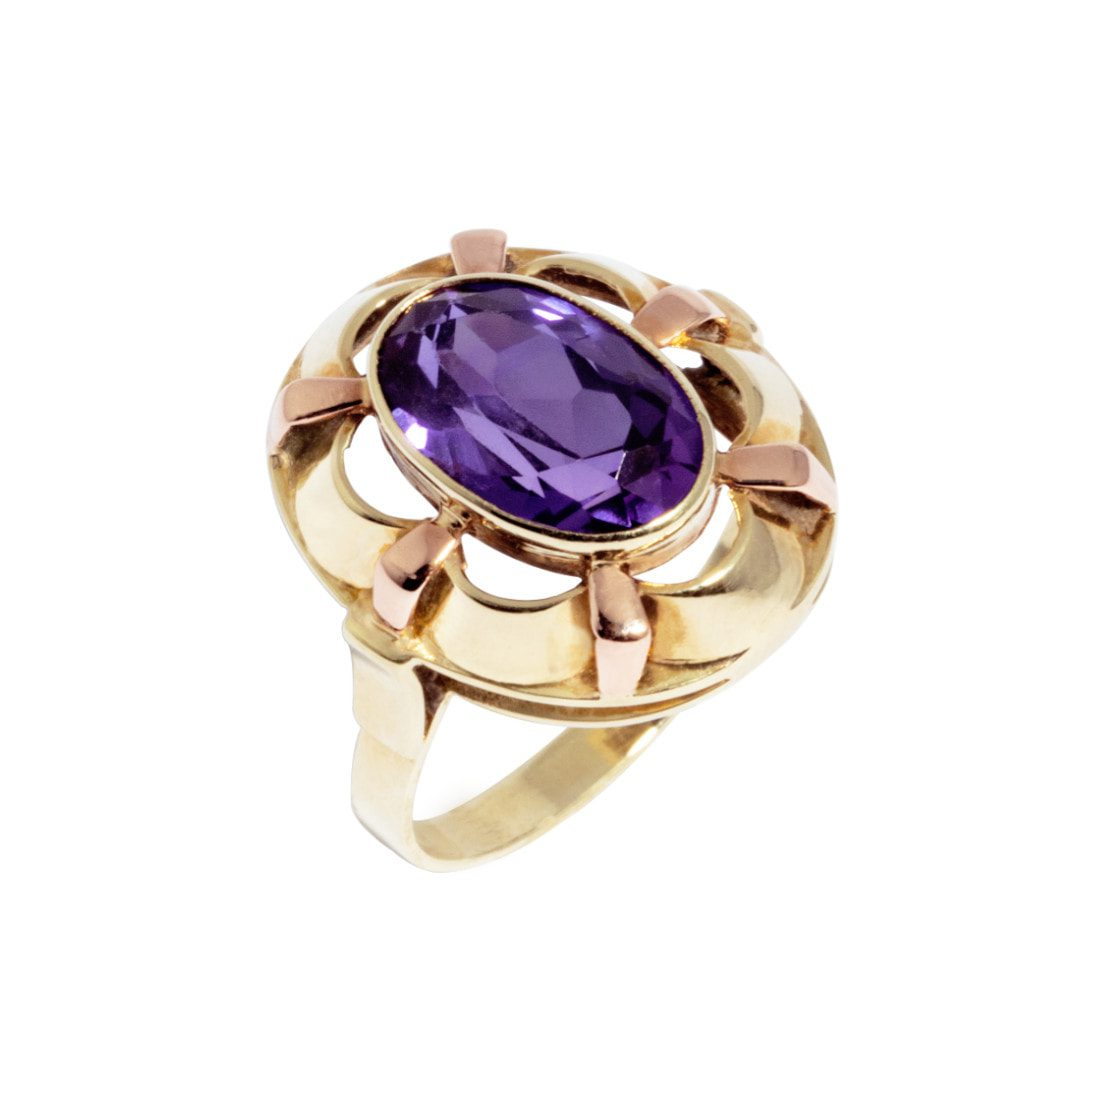 14 karat two tone gold ring with purple stone